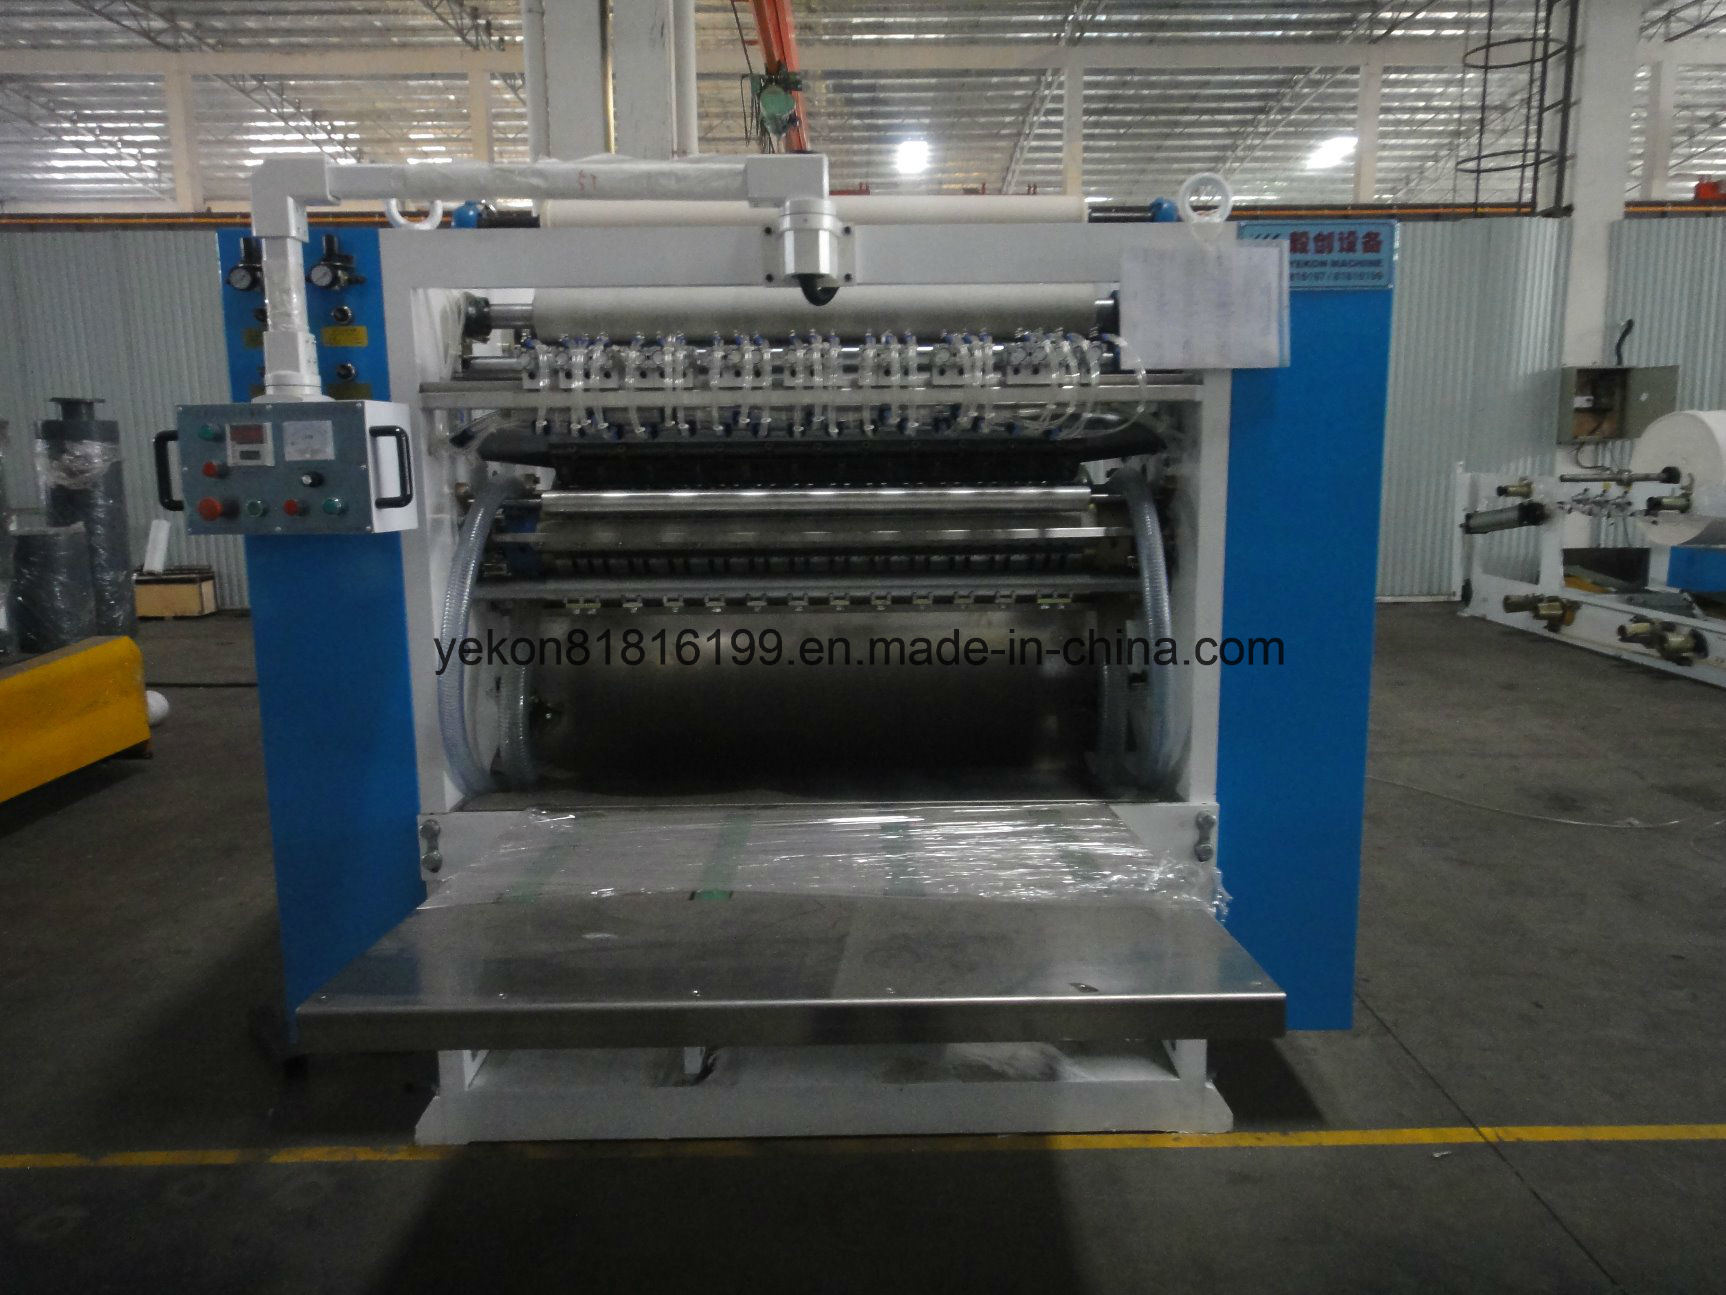 Yekon Facial Tissue Folding Machine